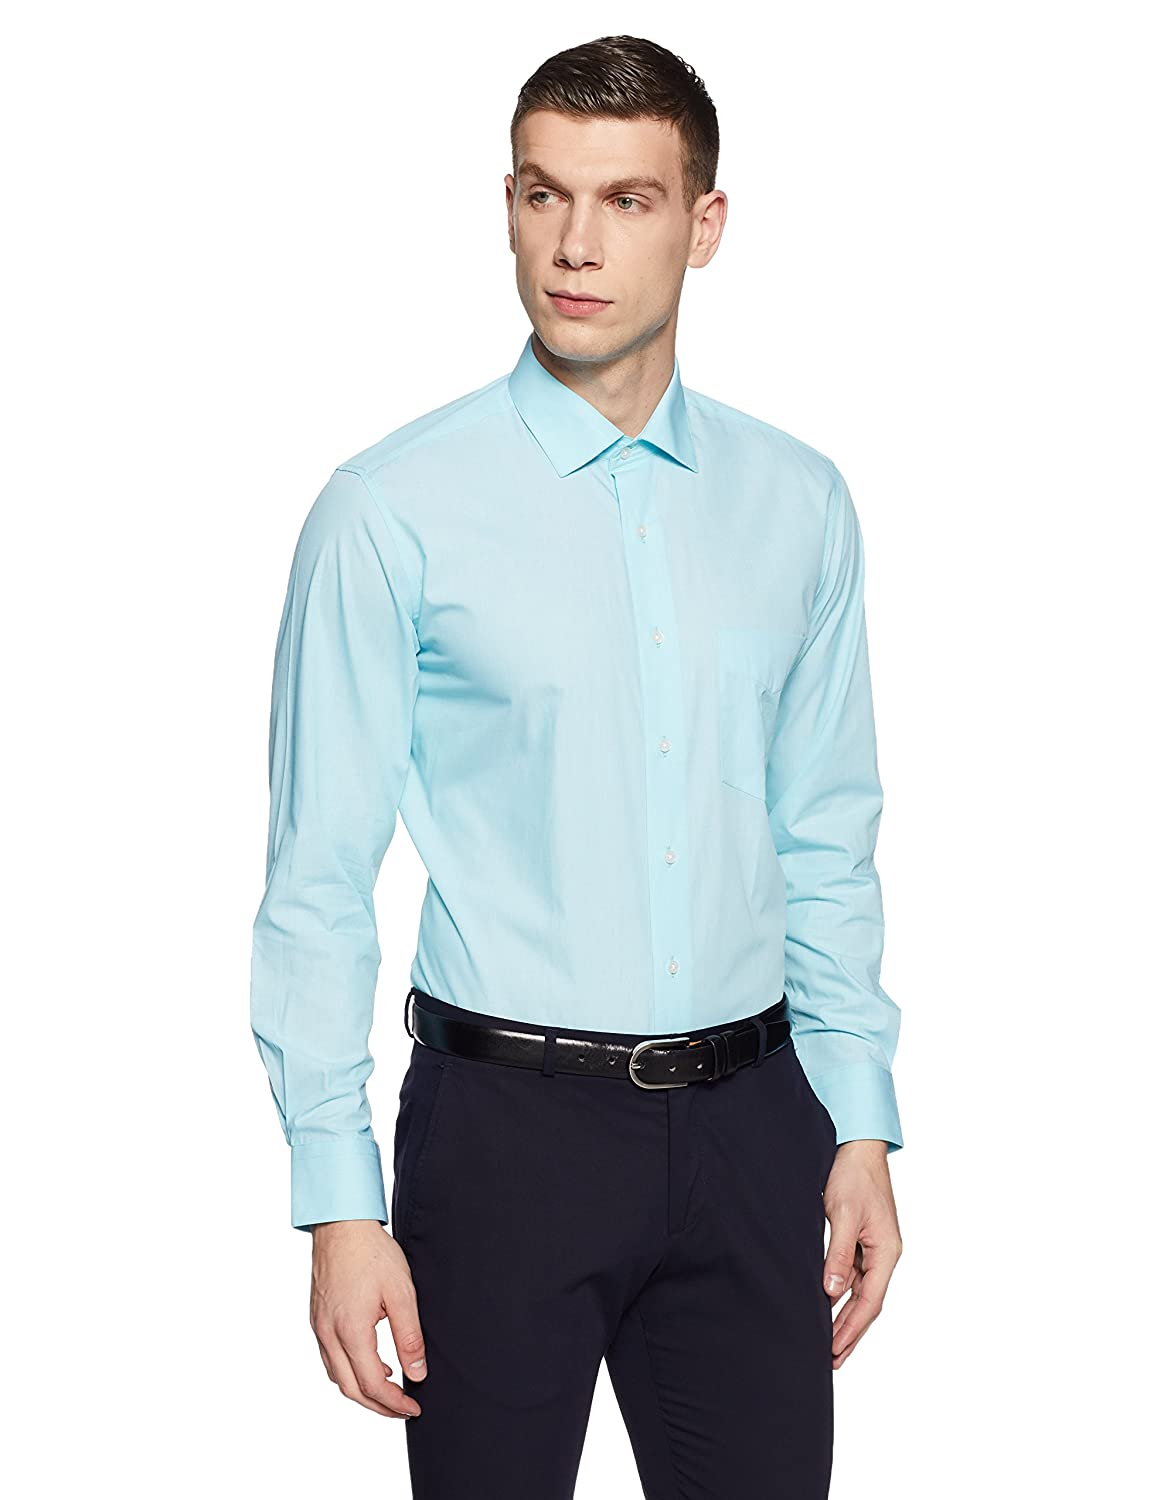 85390159d9 Cheap Formal Shirts Online In India - Ortsplanungsrevision Stadt Thun